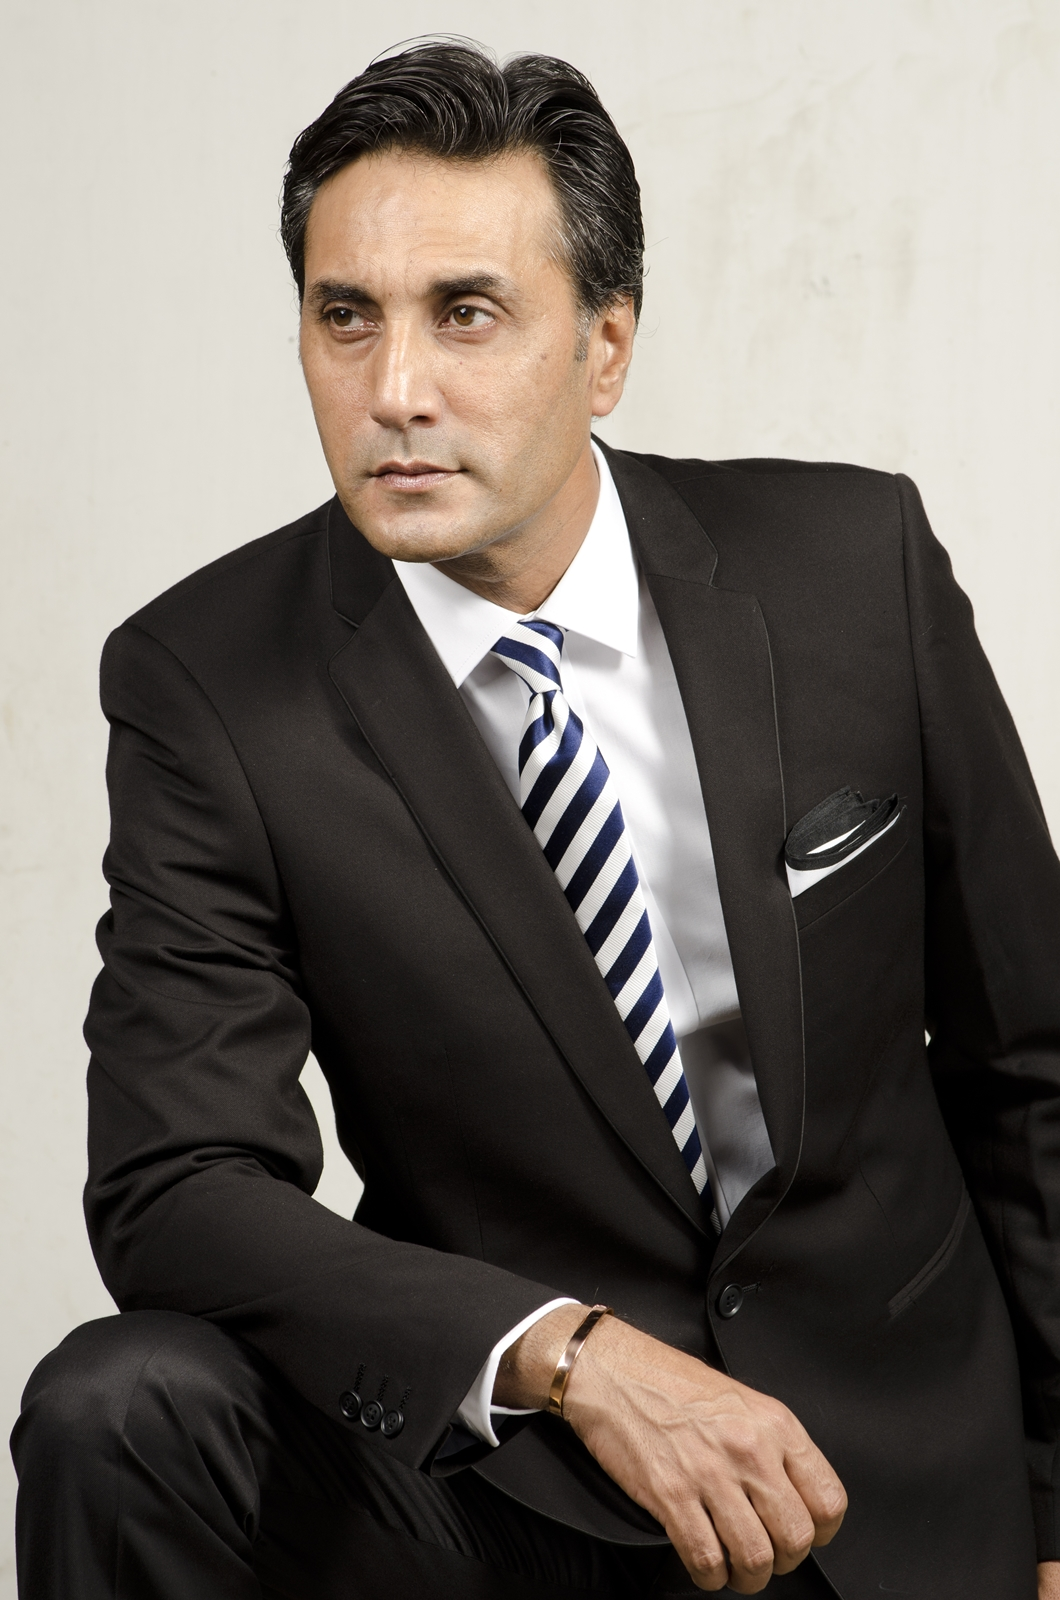 adnan-siddiqui-hm-blog-post